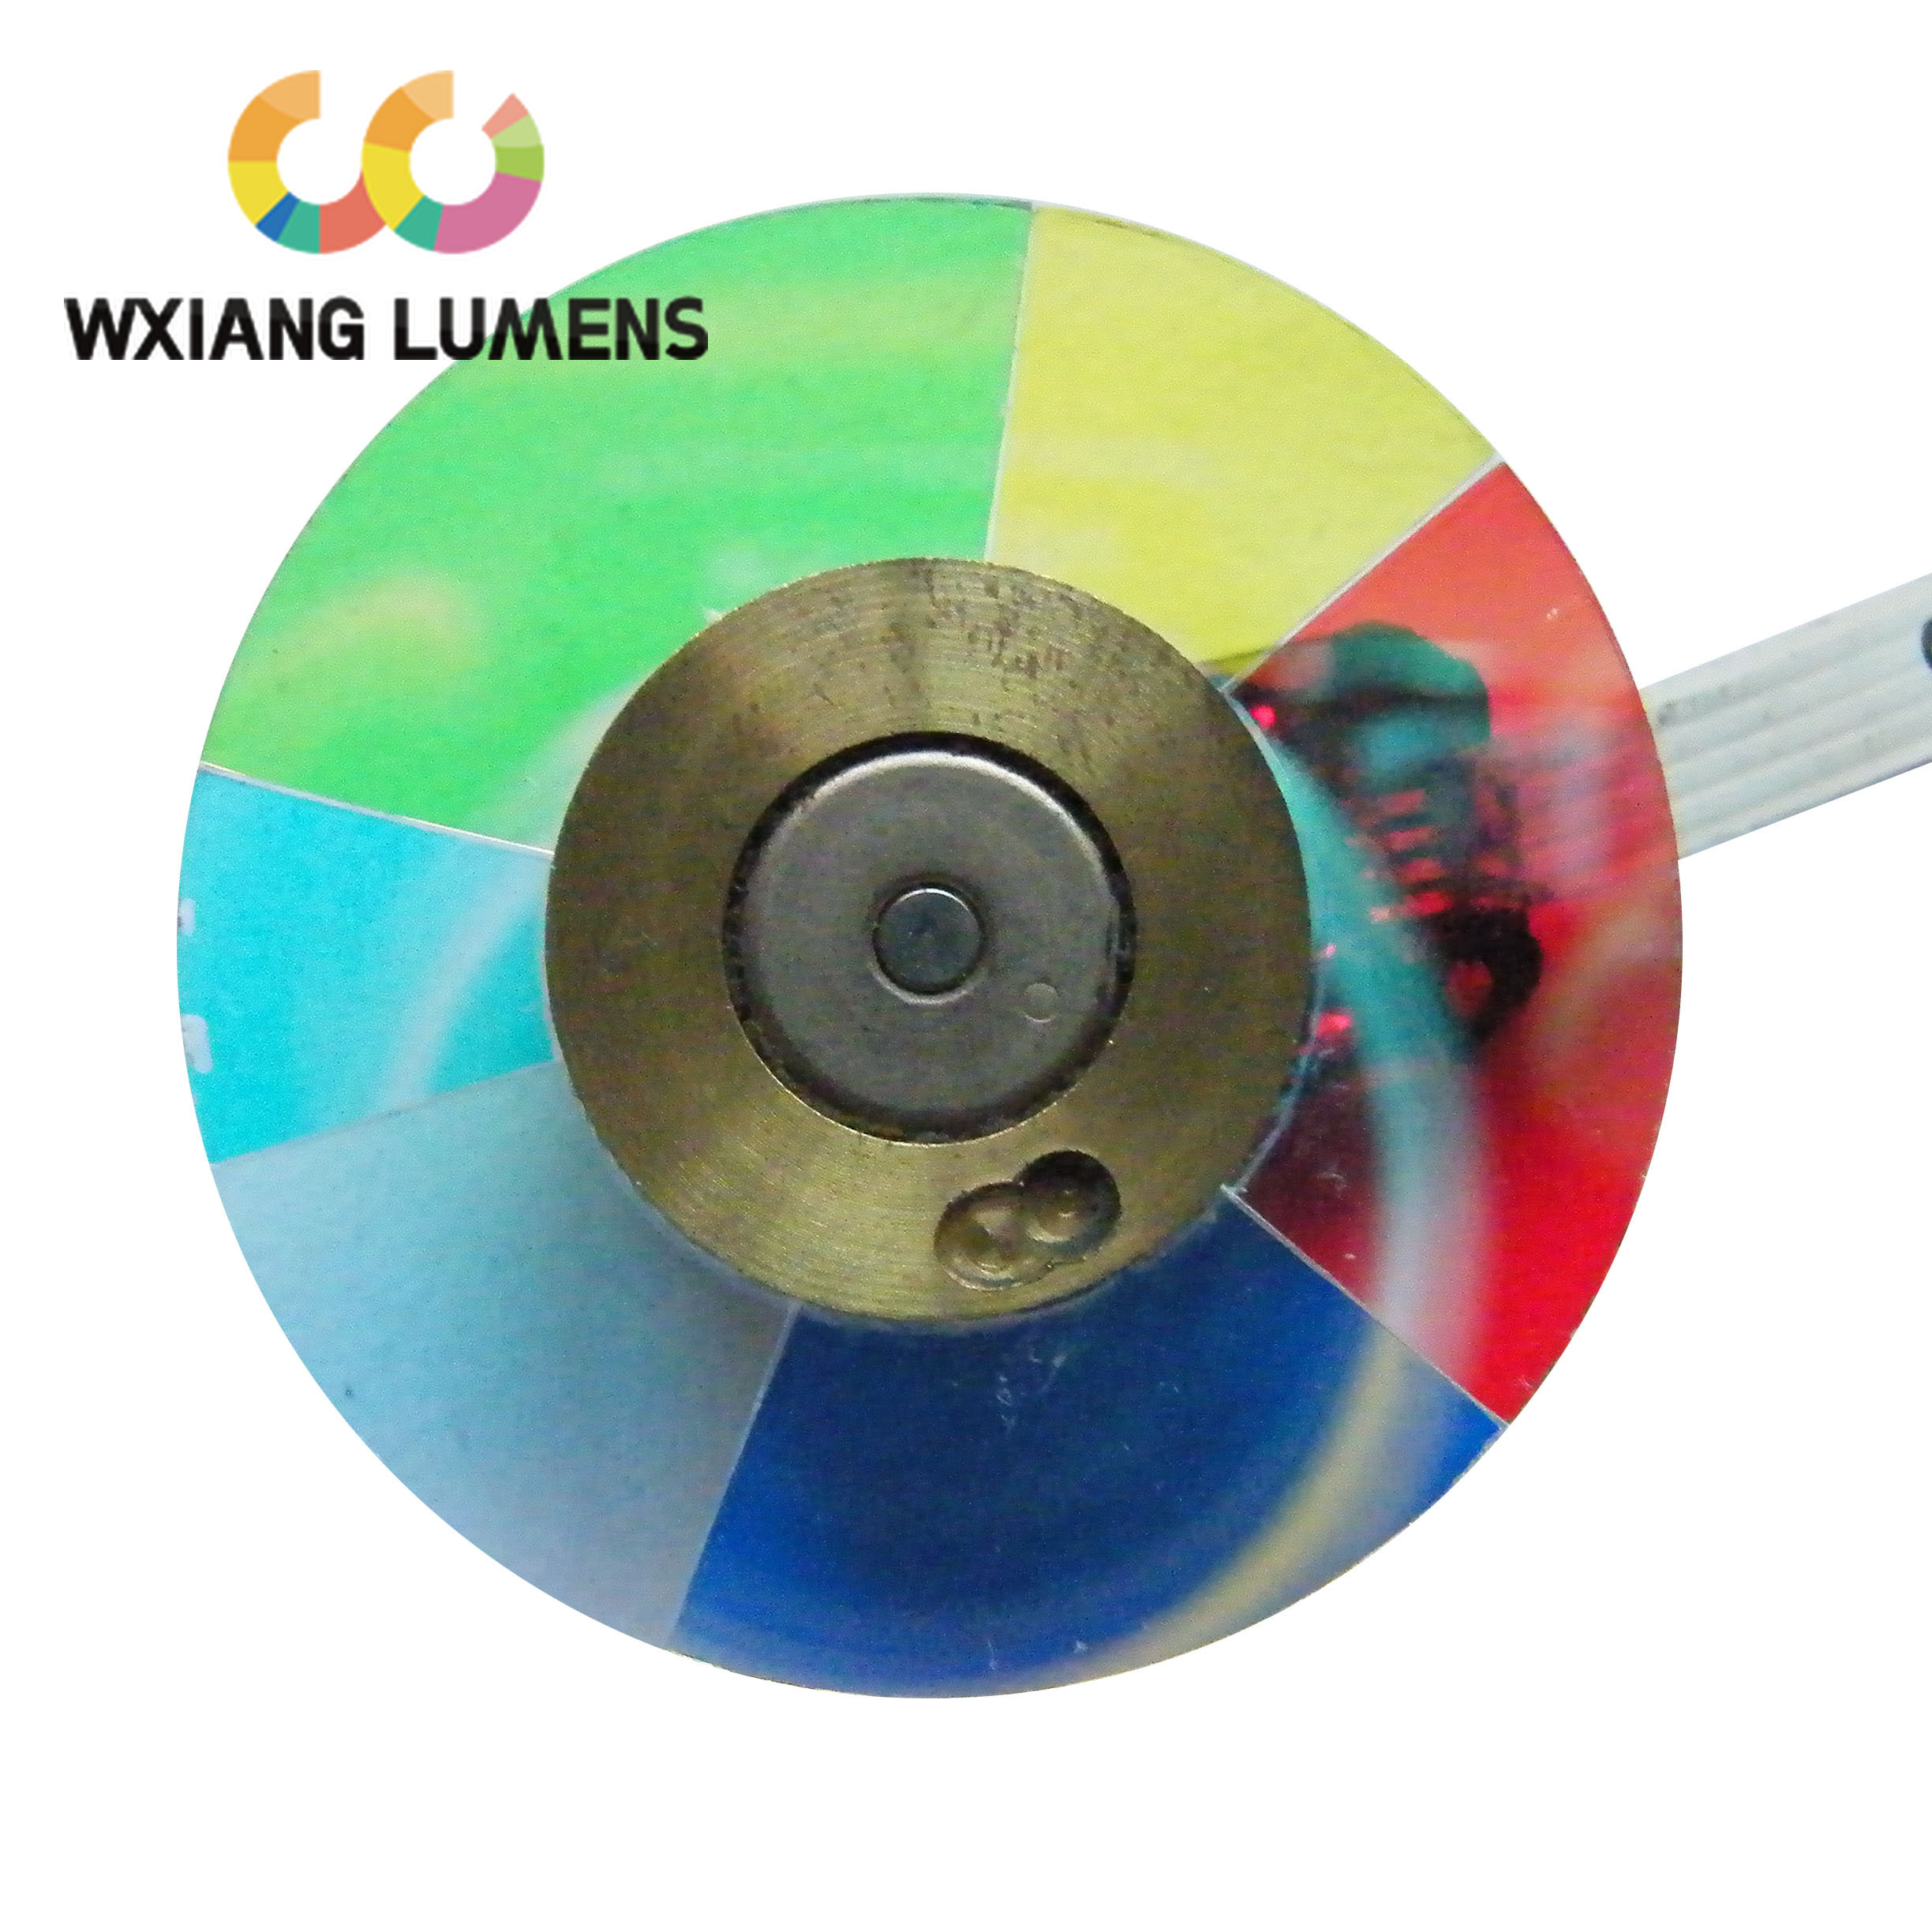 Projector Dichroic Color Wheel Fit for Panasonic PT-SD2600 6 SegmentsProjector Dichroic Color Wheel Fit for Panasonic PT-SD2600 6 Segments